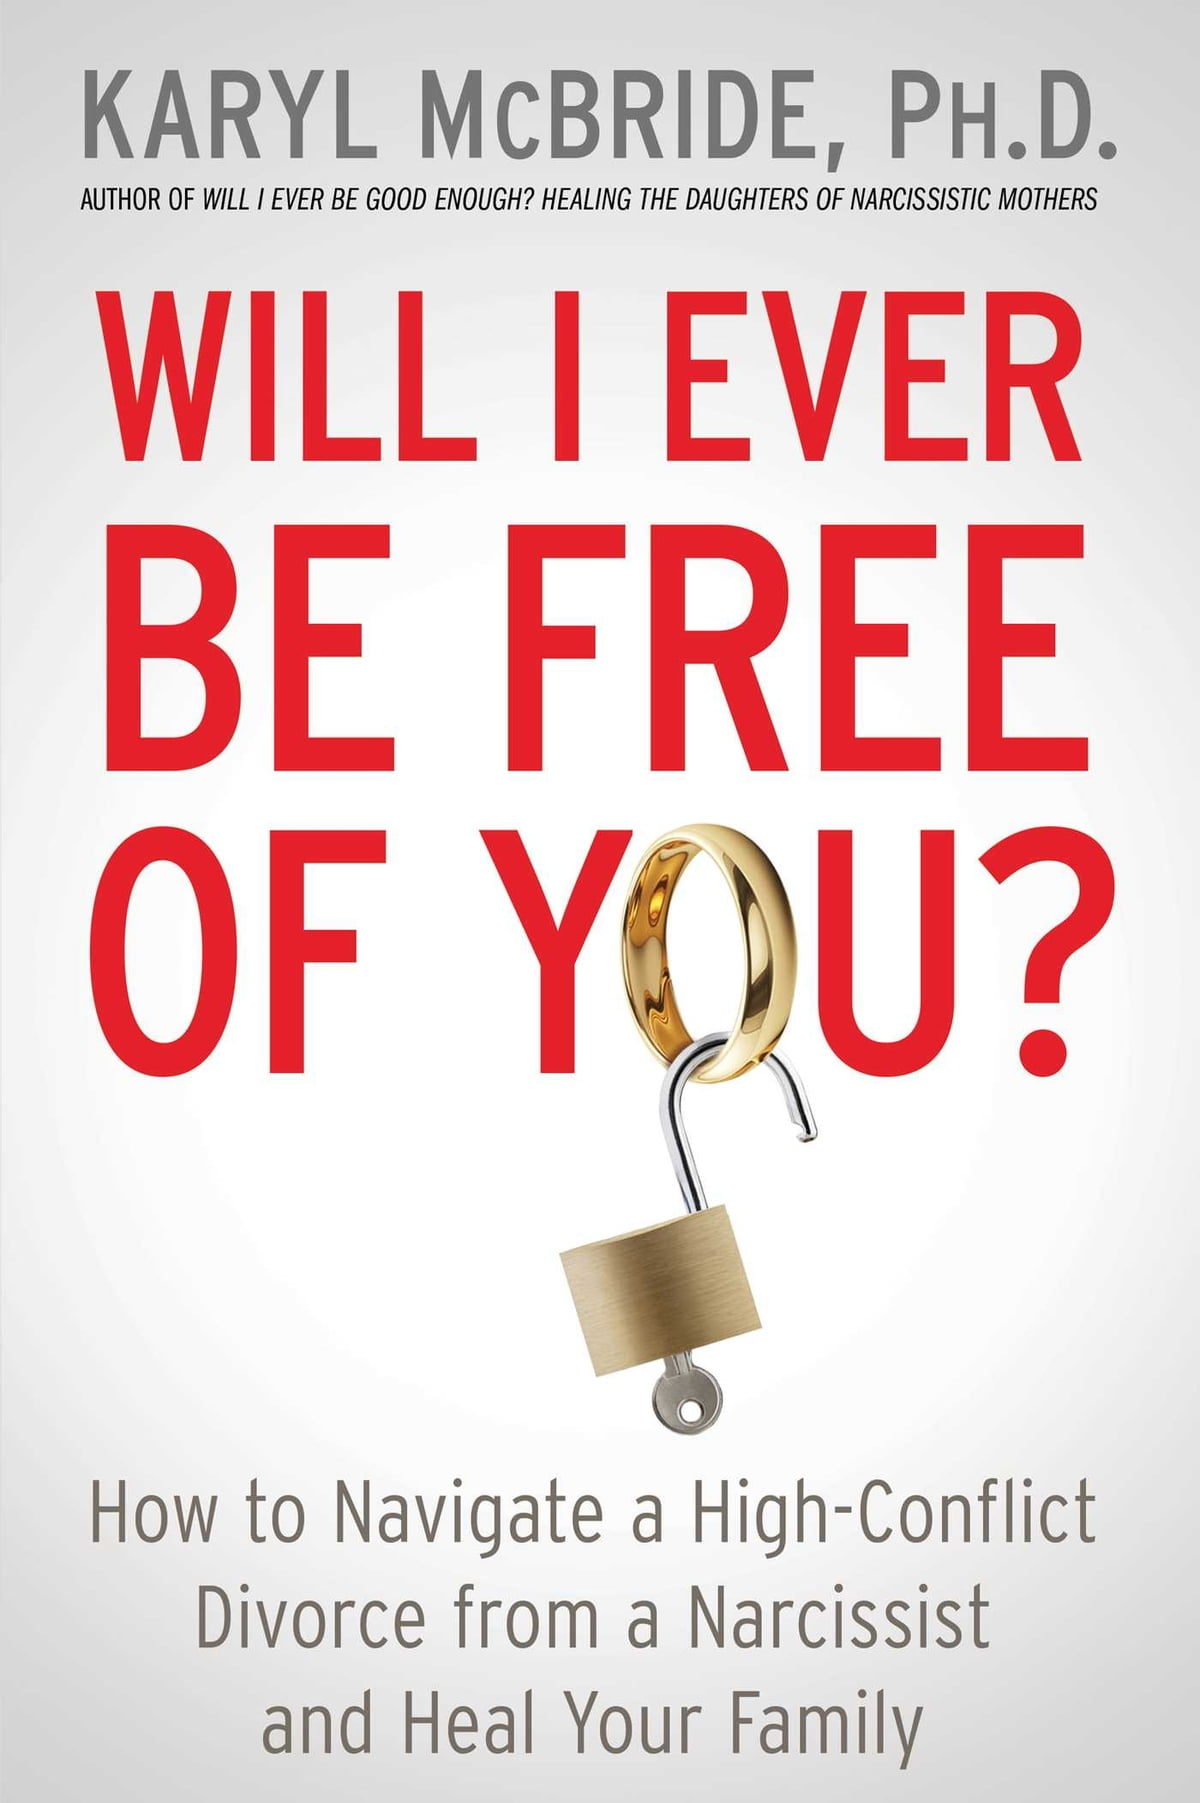 Workbooks codependency workbook free : Will I Ever Be Free of You? eBook by Dr. Karyl McBride, Ph.D ...